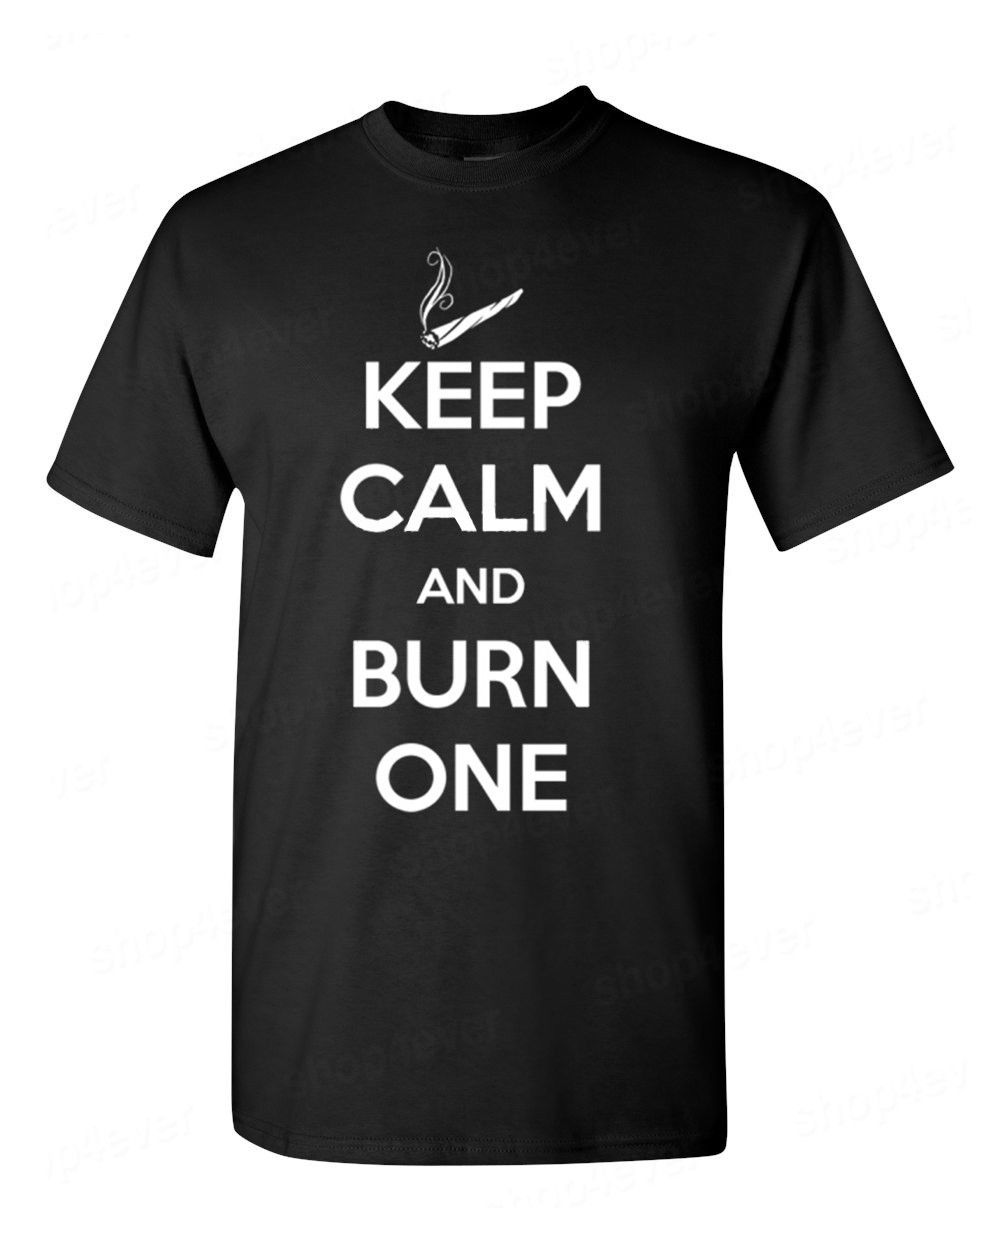 Gildan Funny Simple Keep Calm And Burn One T Shirt Blunt Roll Smoking Weed College Party Funny Tee Print Round Neck Man